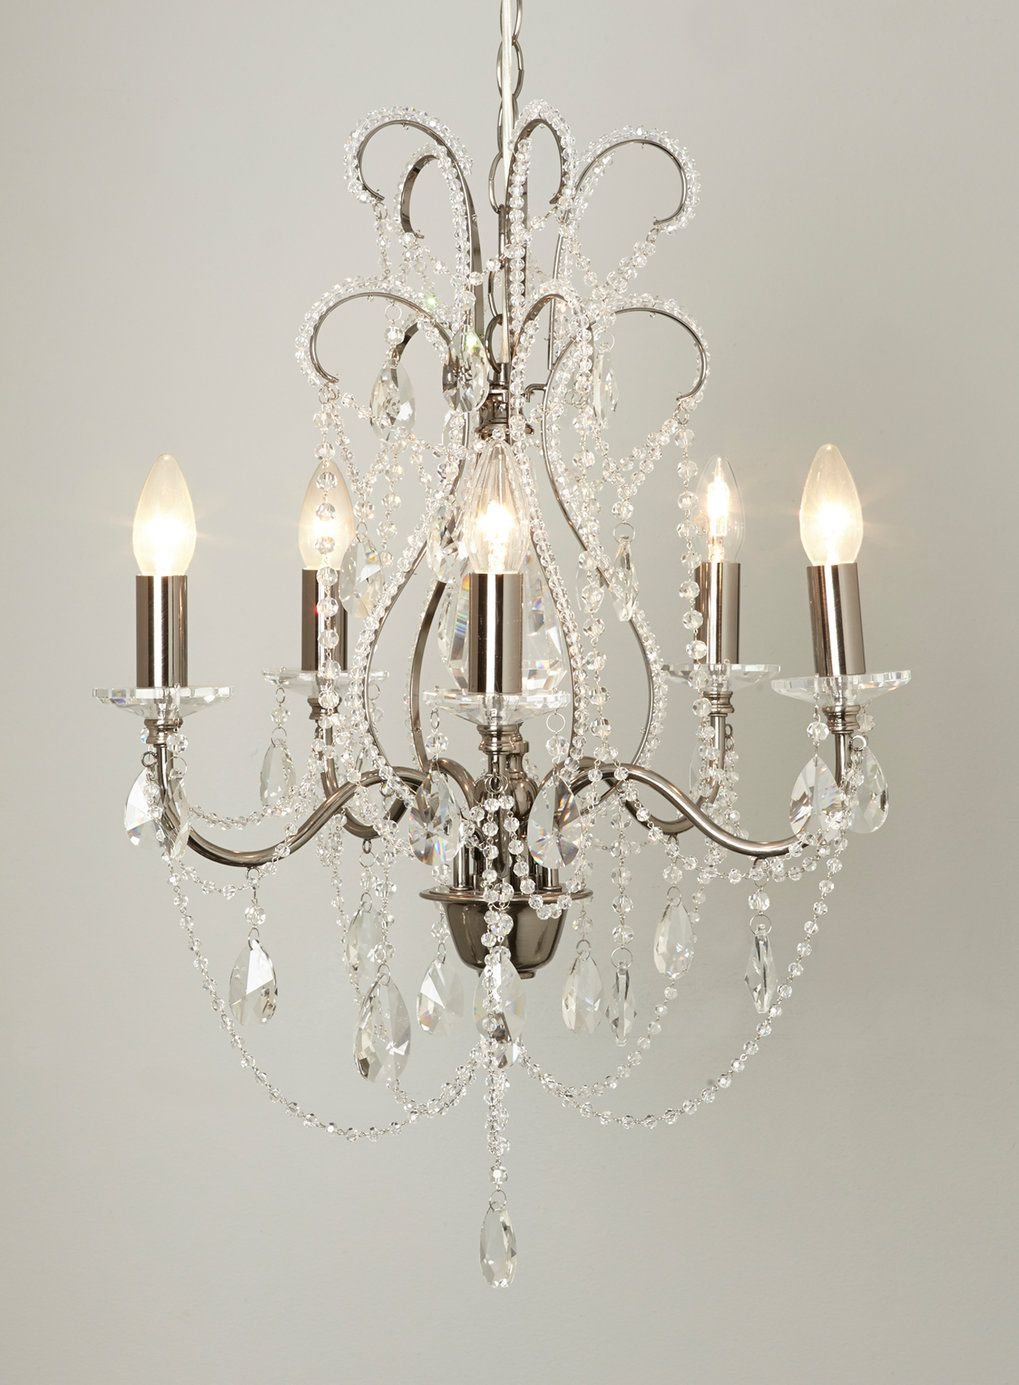 Bathroom Chandeliers Bhs view all lighting & bulbs | home, lighting & furniture | bhs